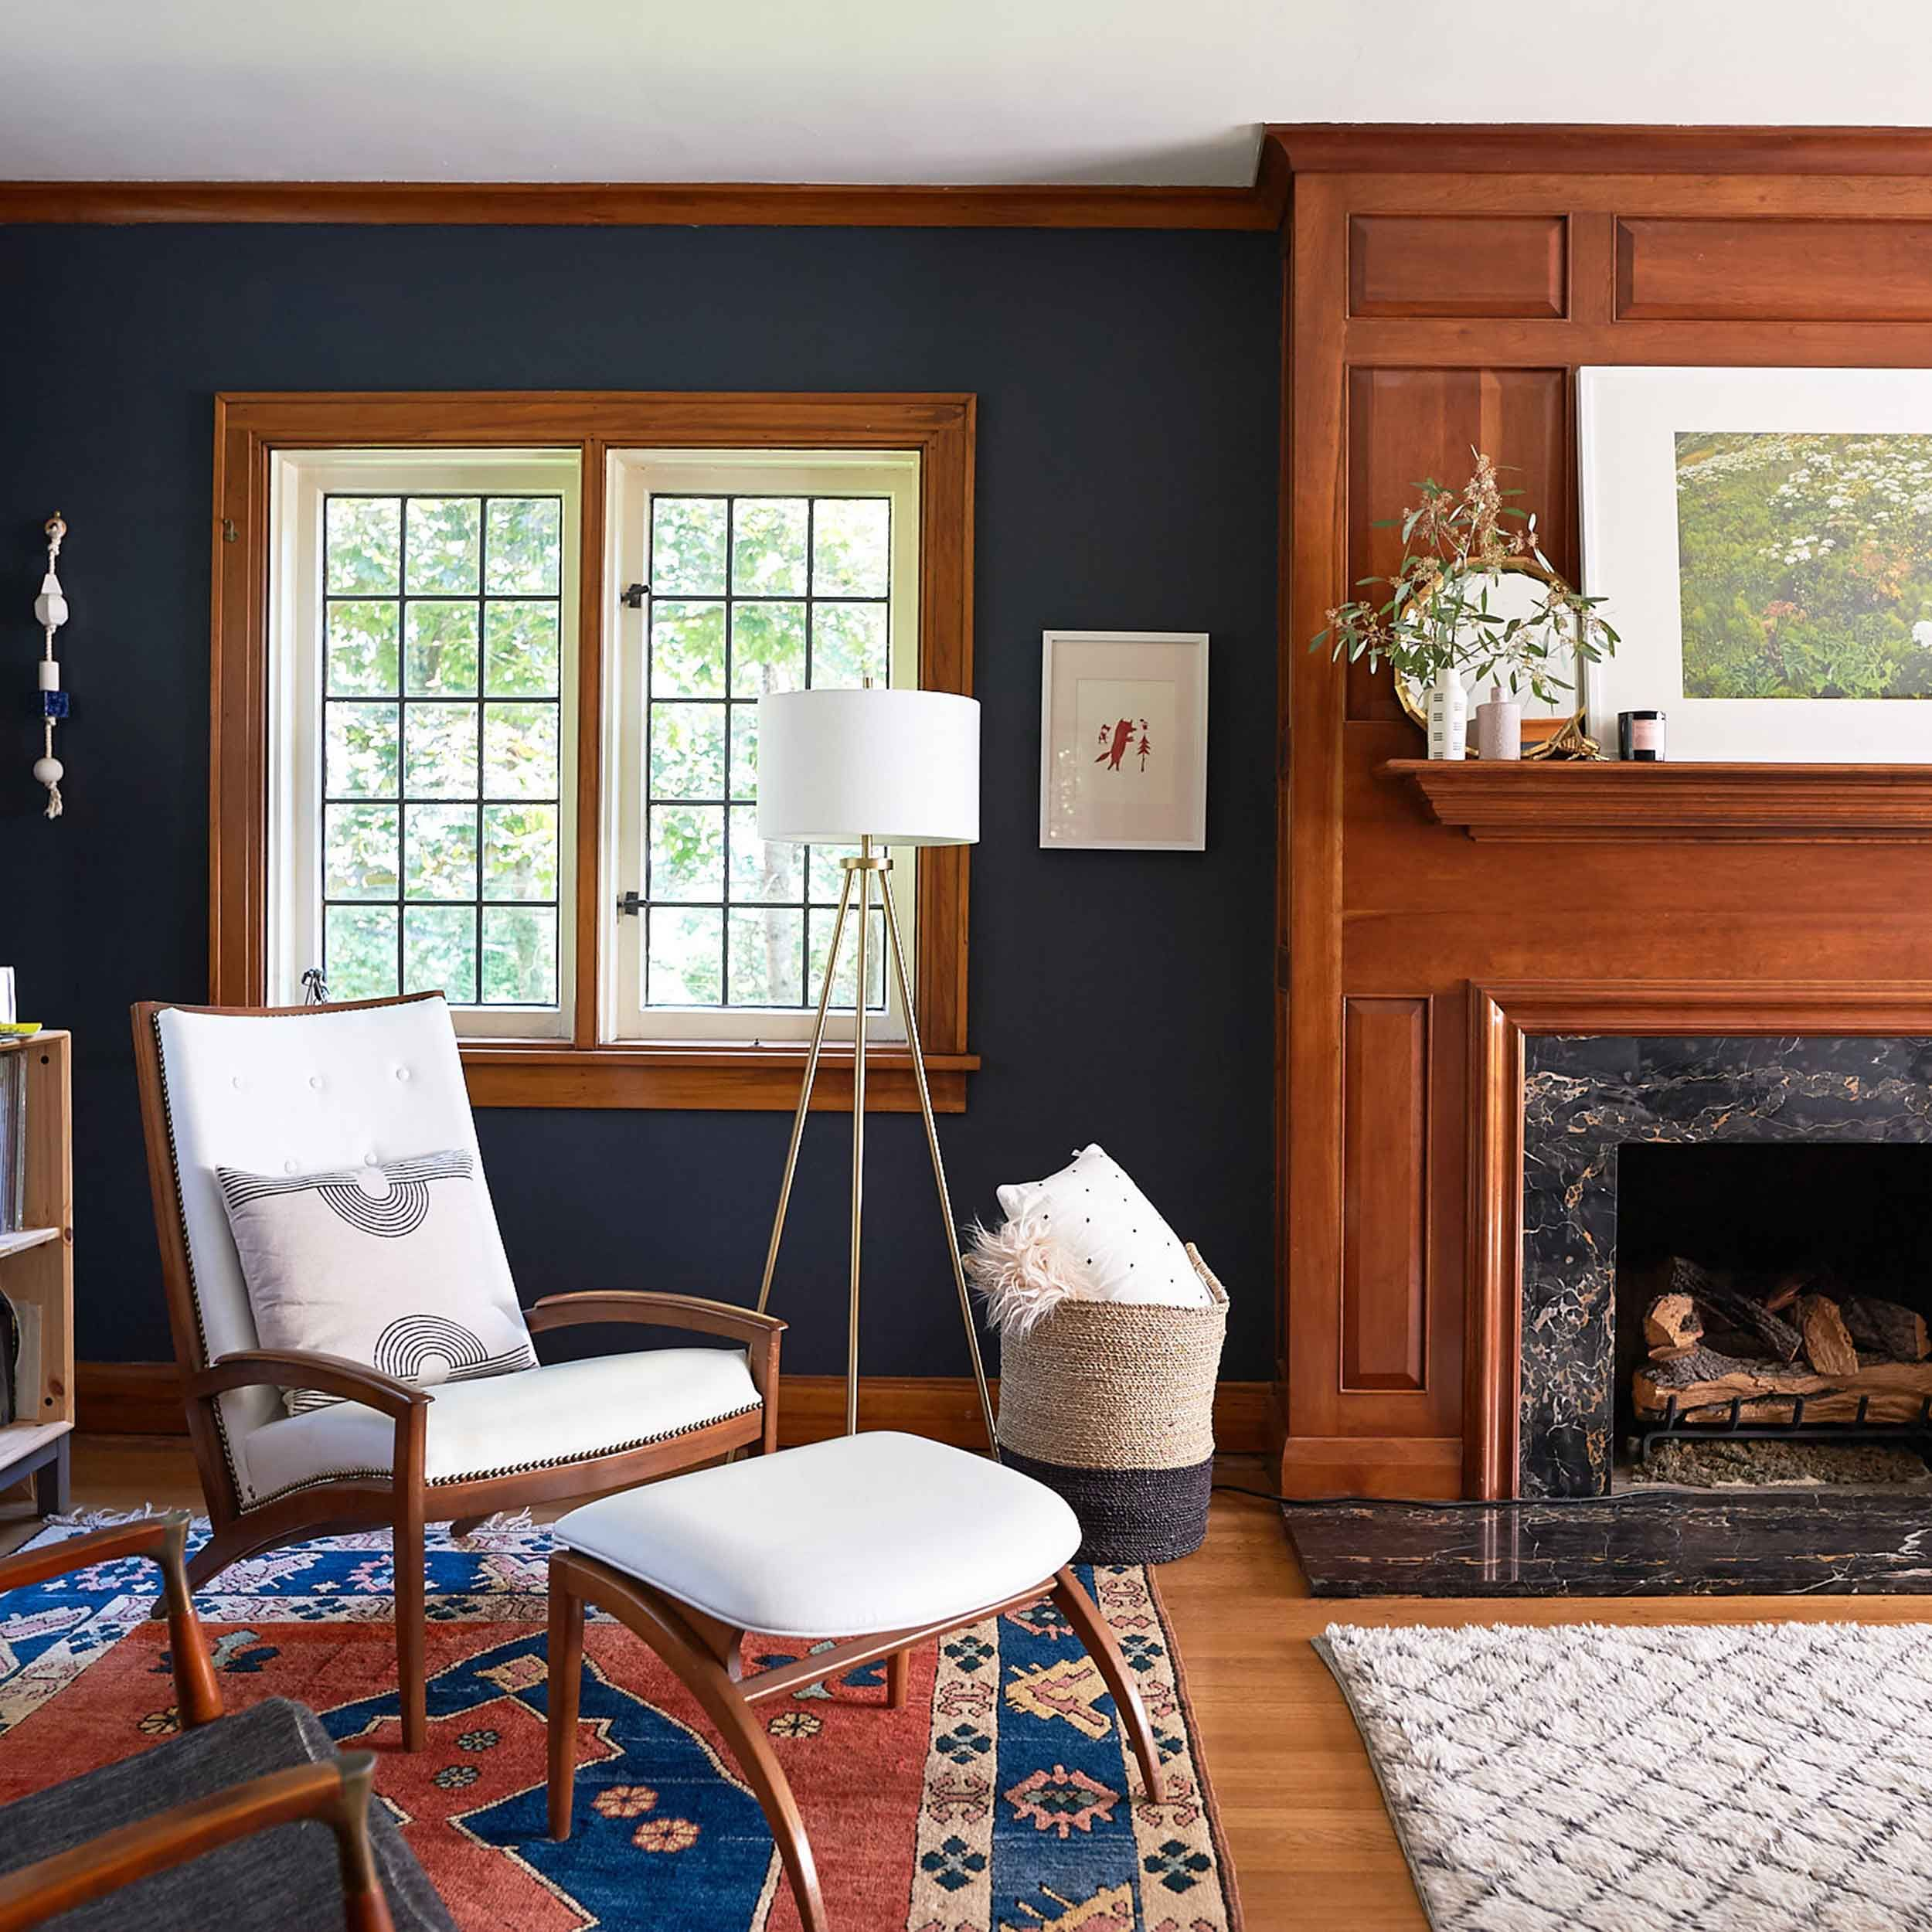 House Tour Original Woodwork, Moody Walls & A GaspWorthy